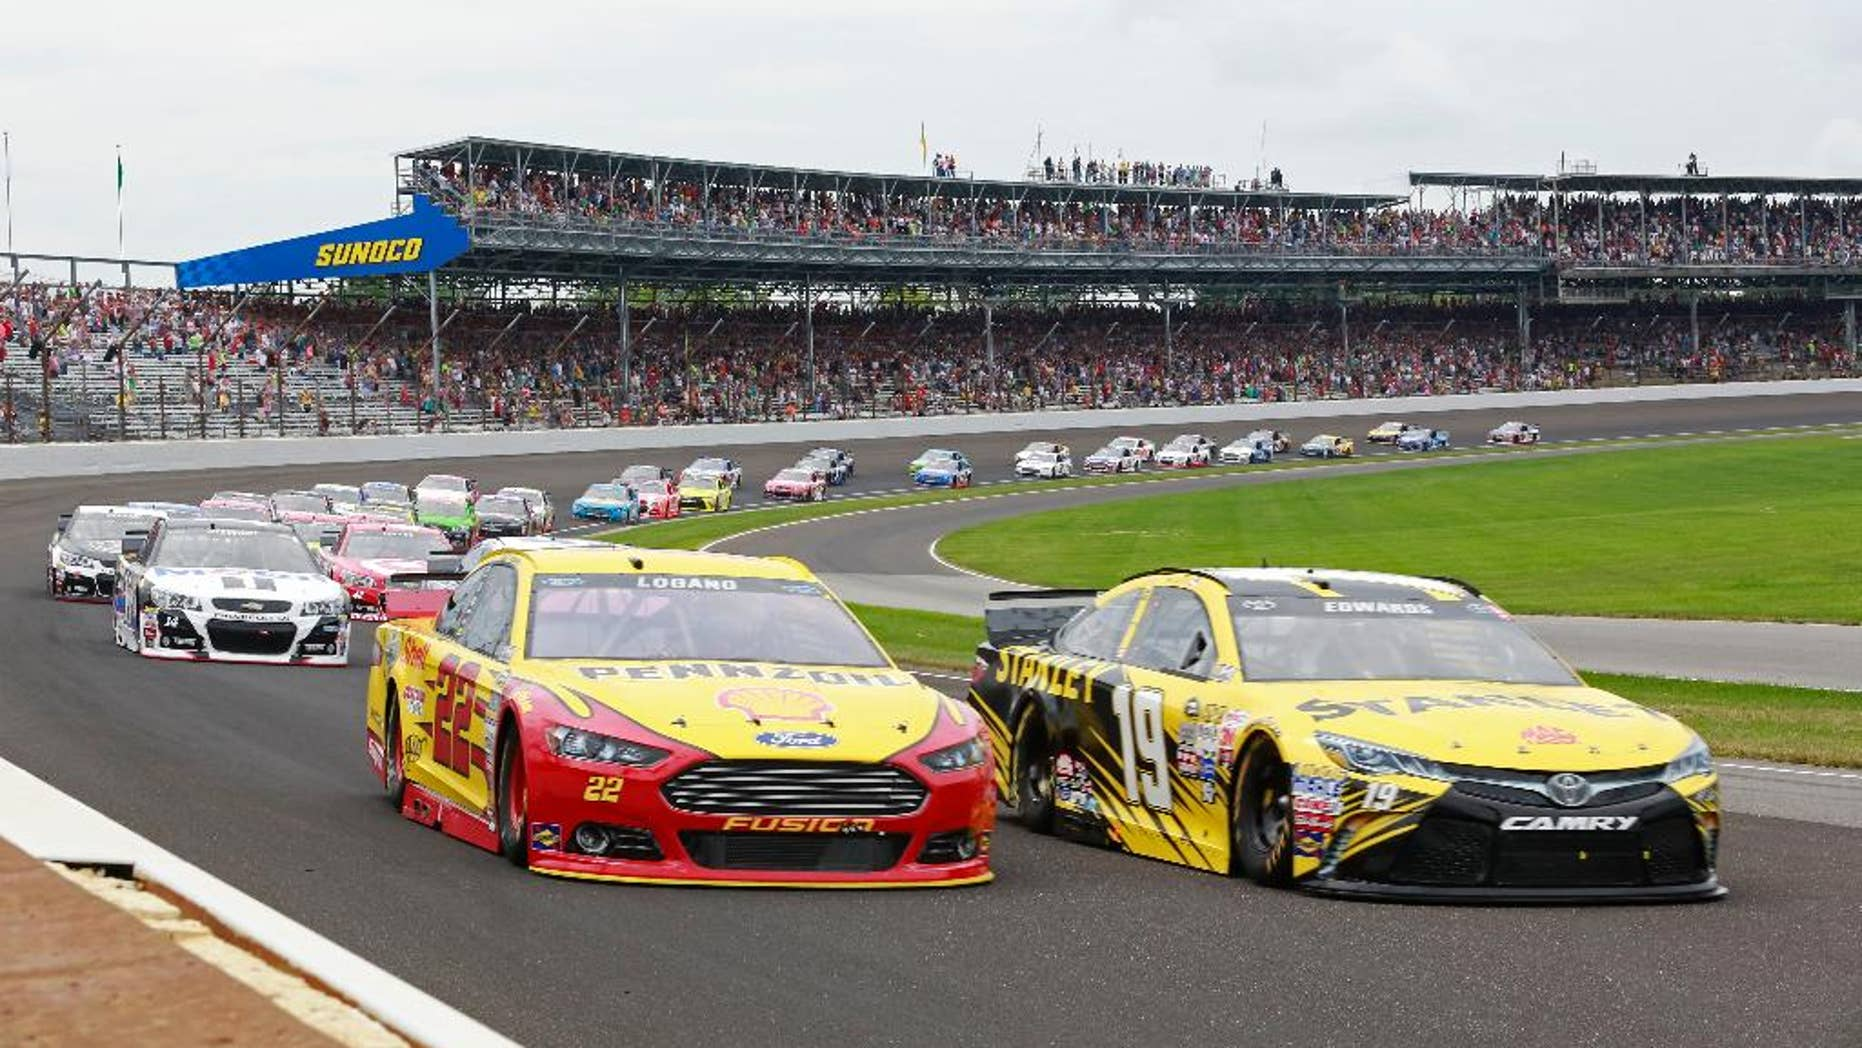 July 26, 2015: Carl Edwards (19) and Joey Logano (22) lead the field through the first turn on the start of the NASCAR Brickyard 400 auto race at Indianapolis Motor Speedway in Indianapolis.